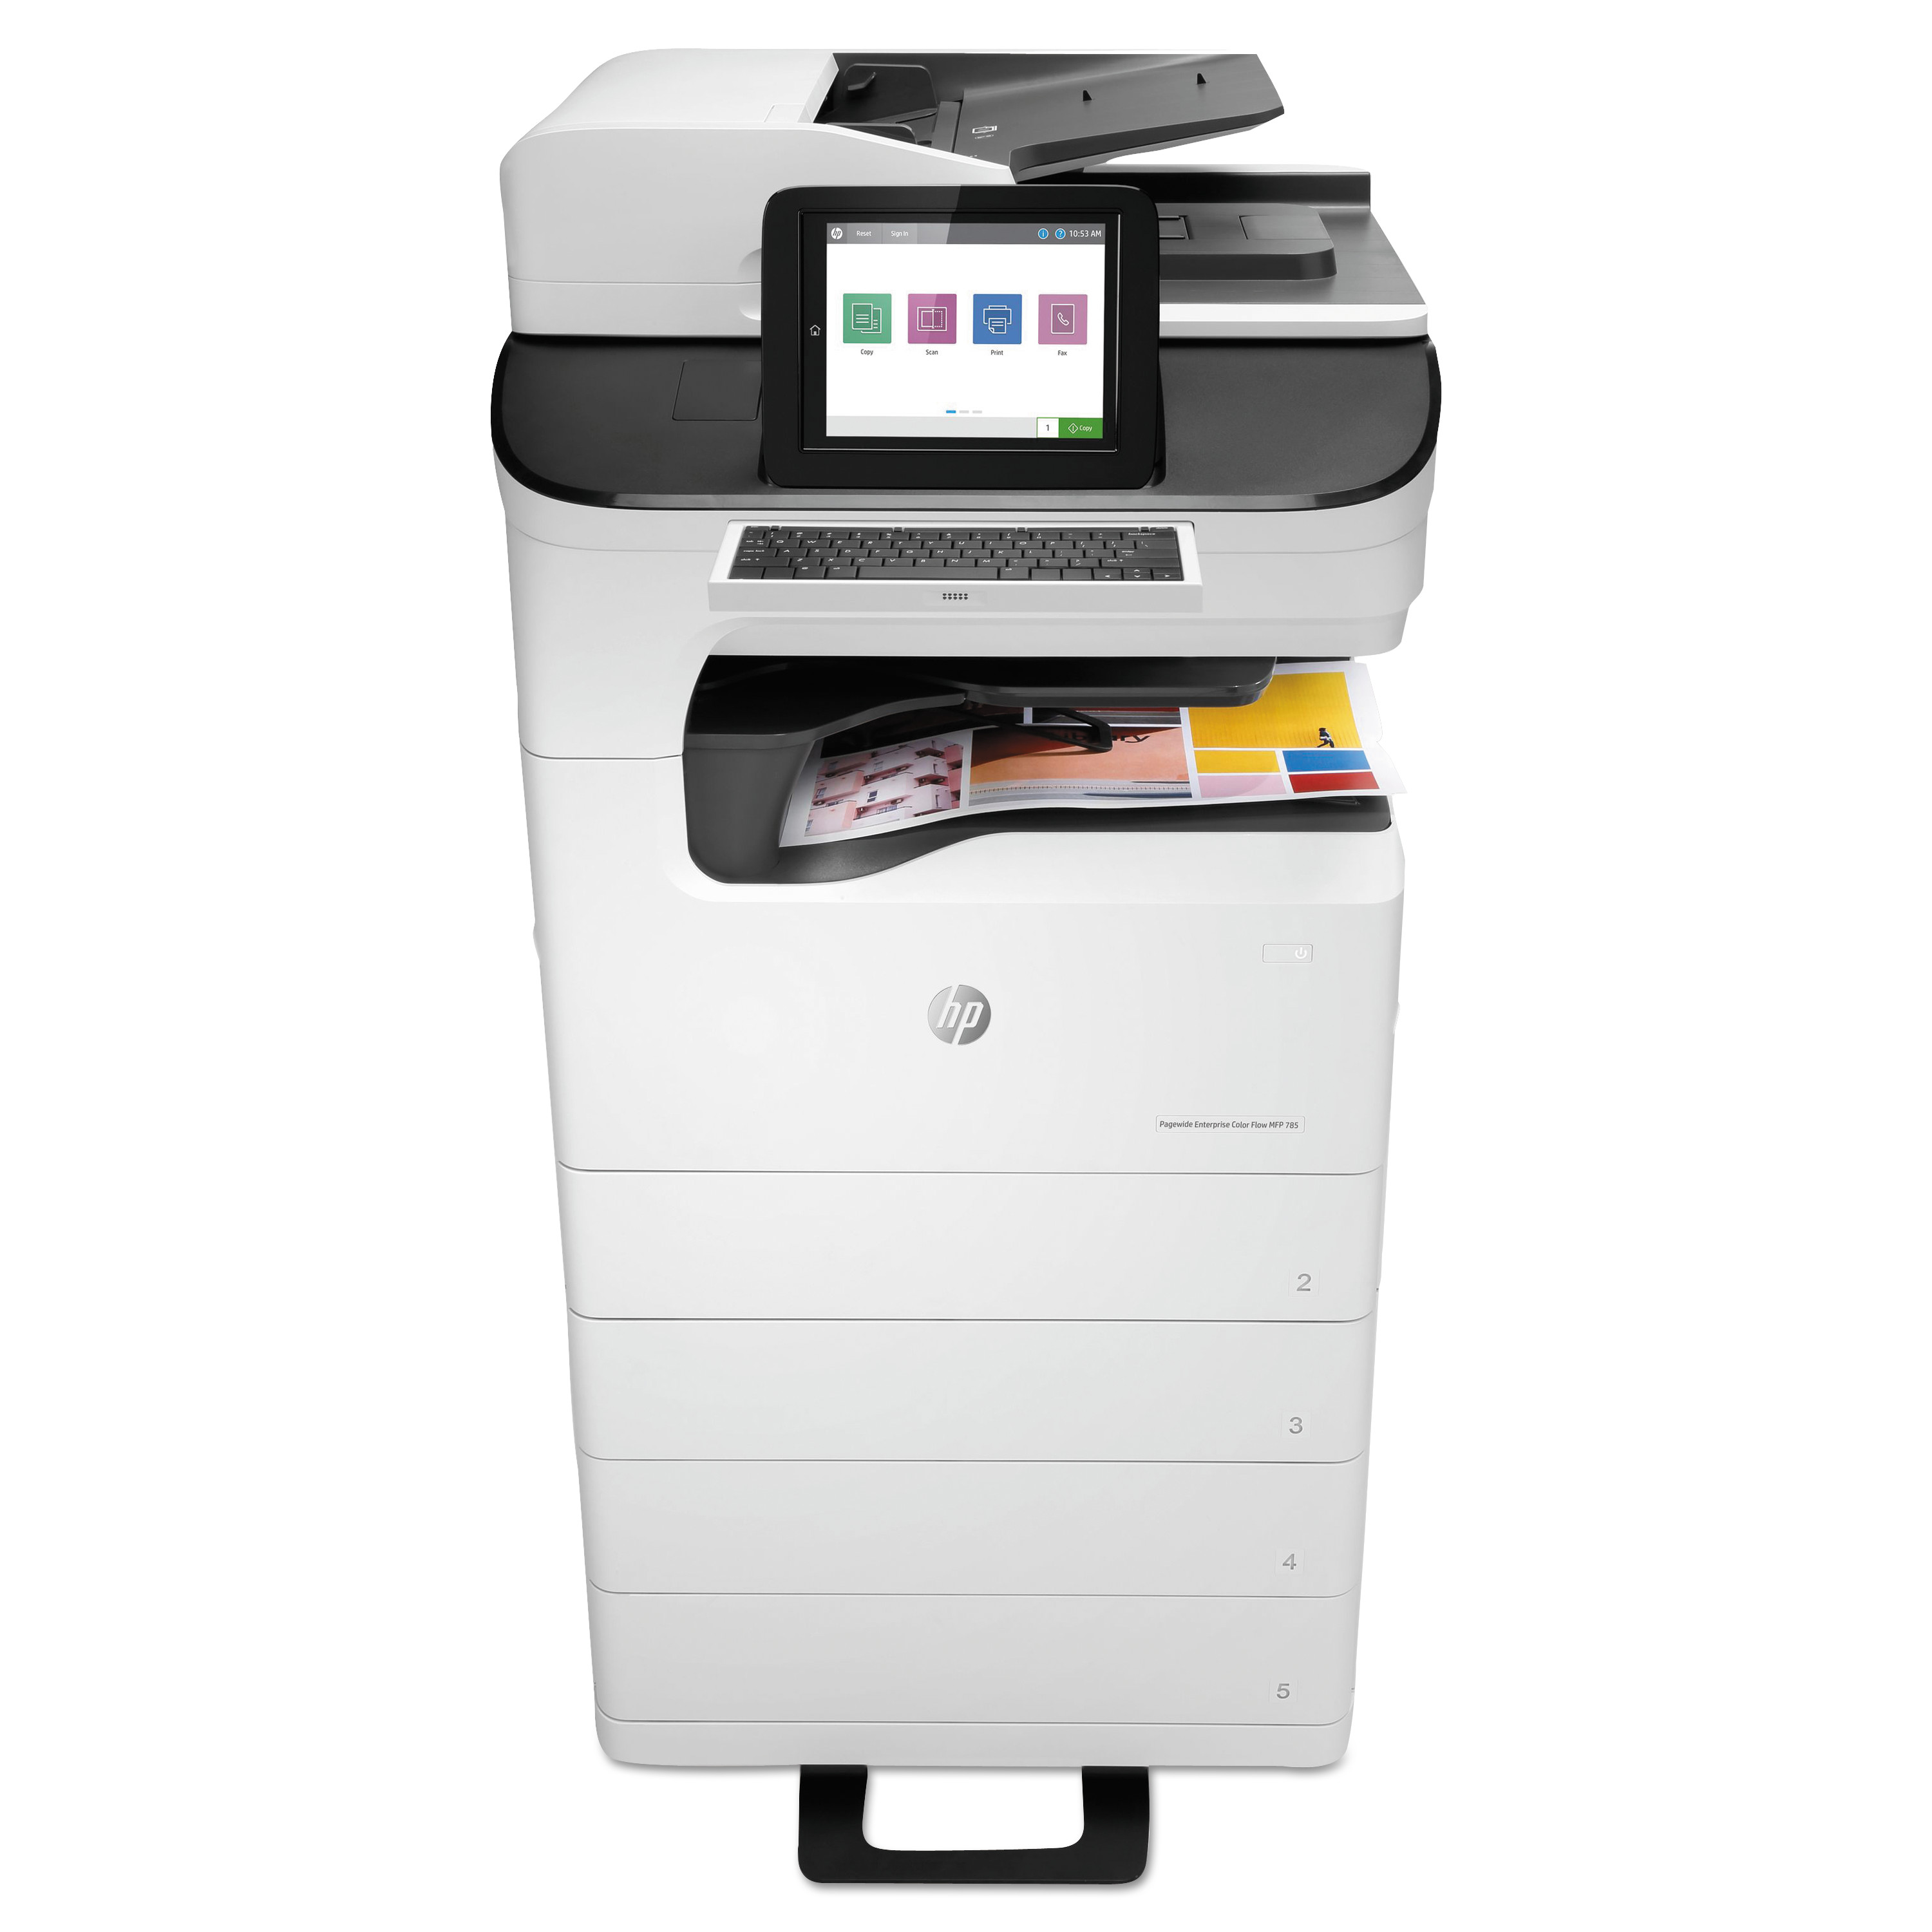 PageWide Enterprise Color Flow MFP 785zs, Copy/Fax/Print/Scan